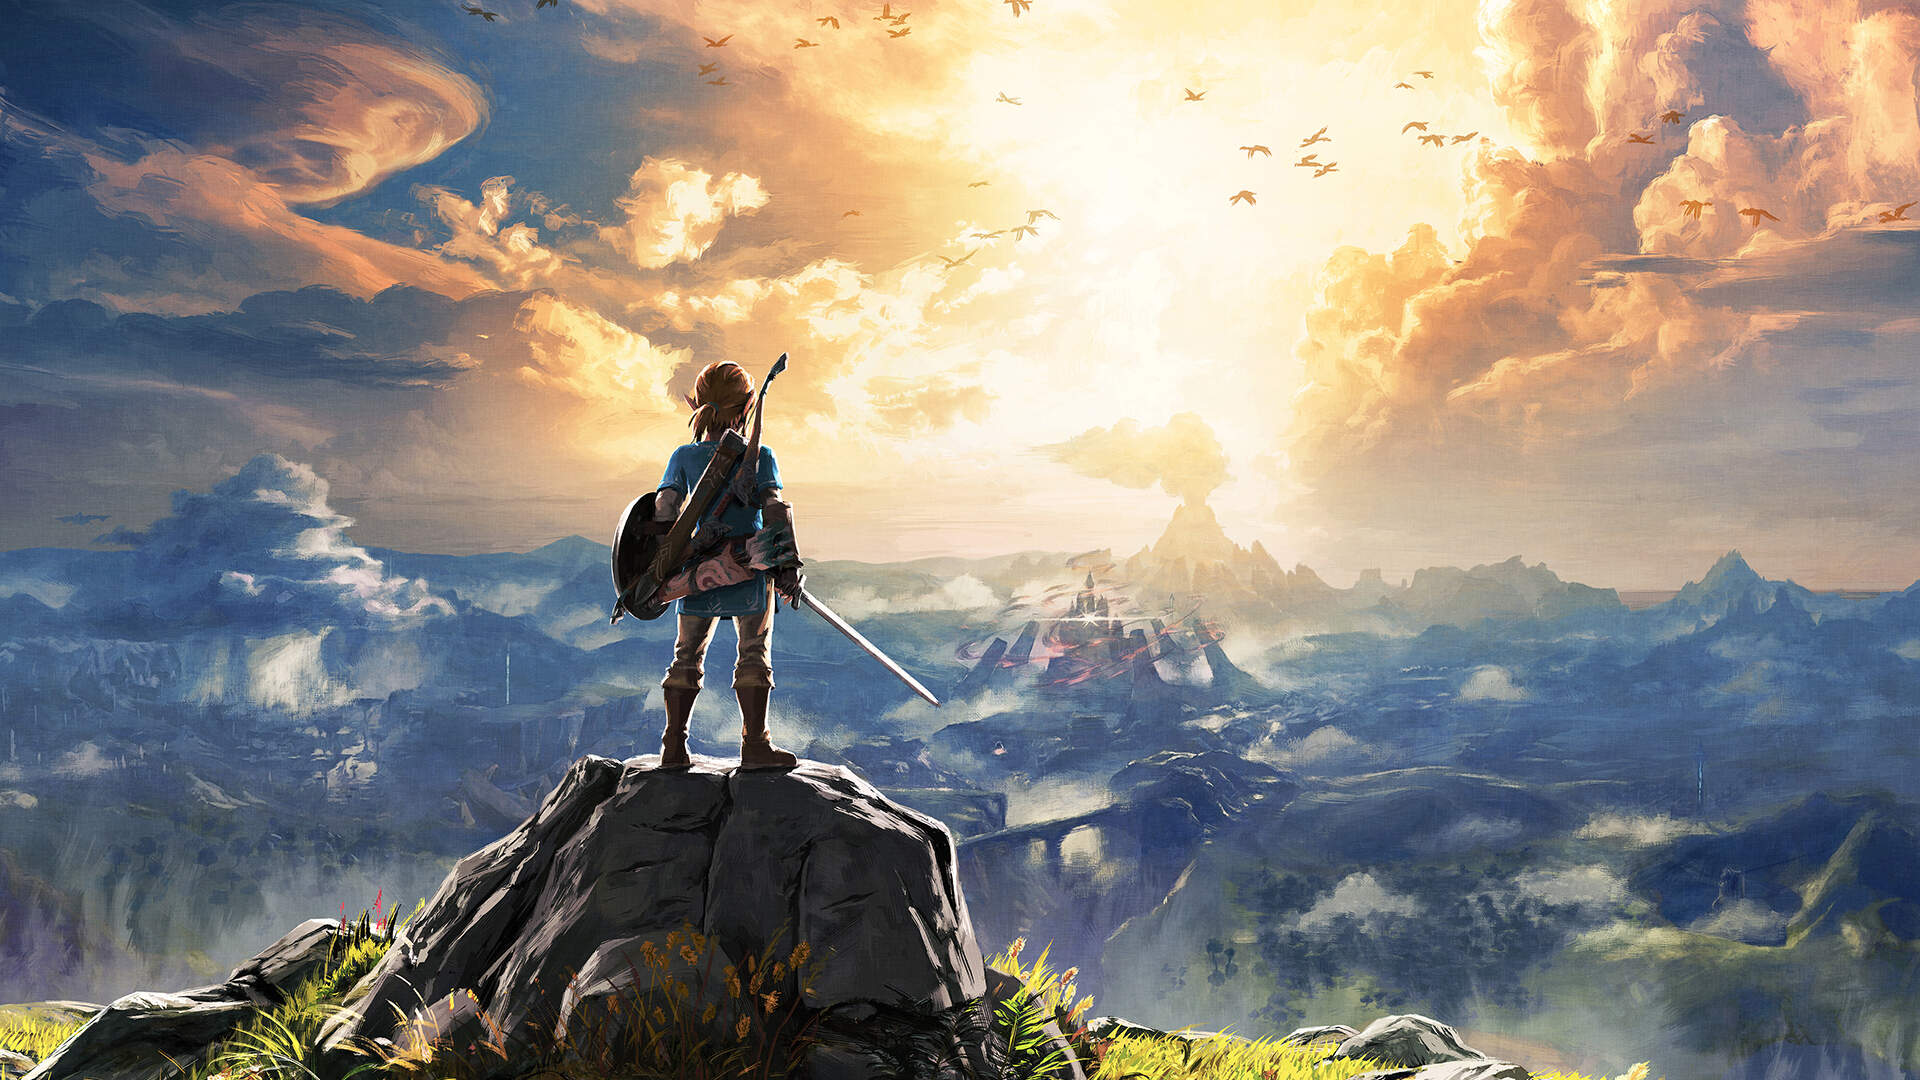 Turns Out Breath of the Wild's Guardian Battle Theme Is an Inversion of Zelda's Lullaby